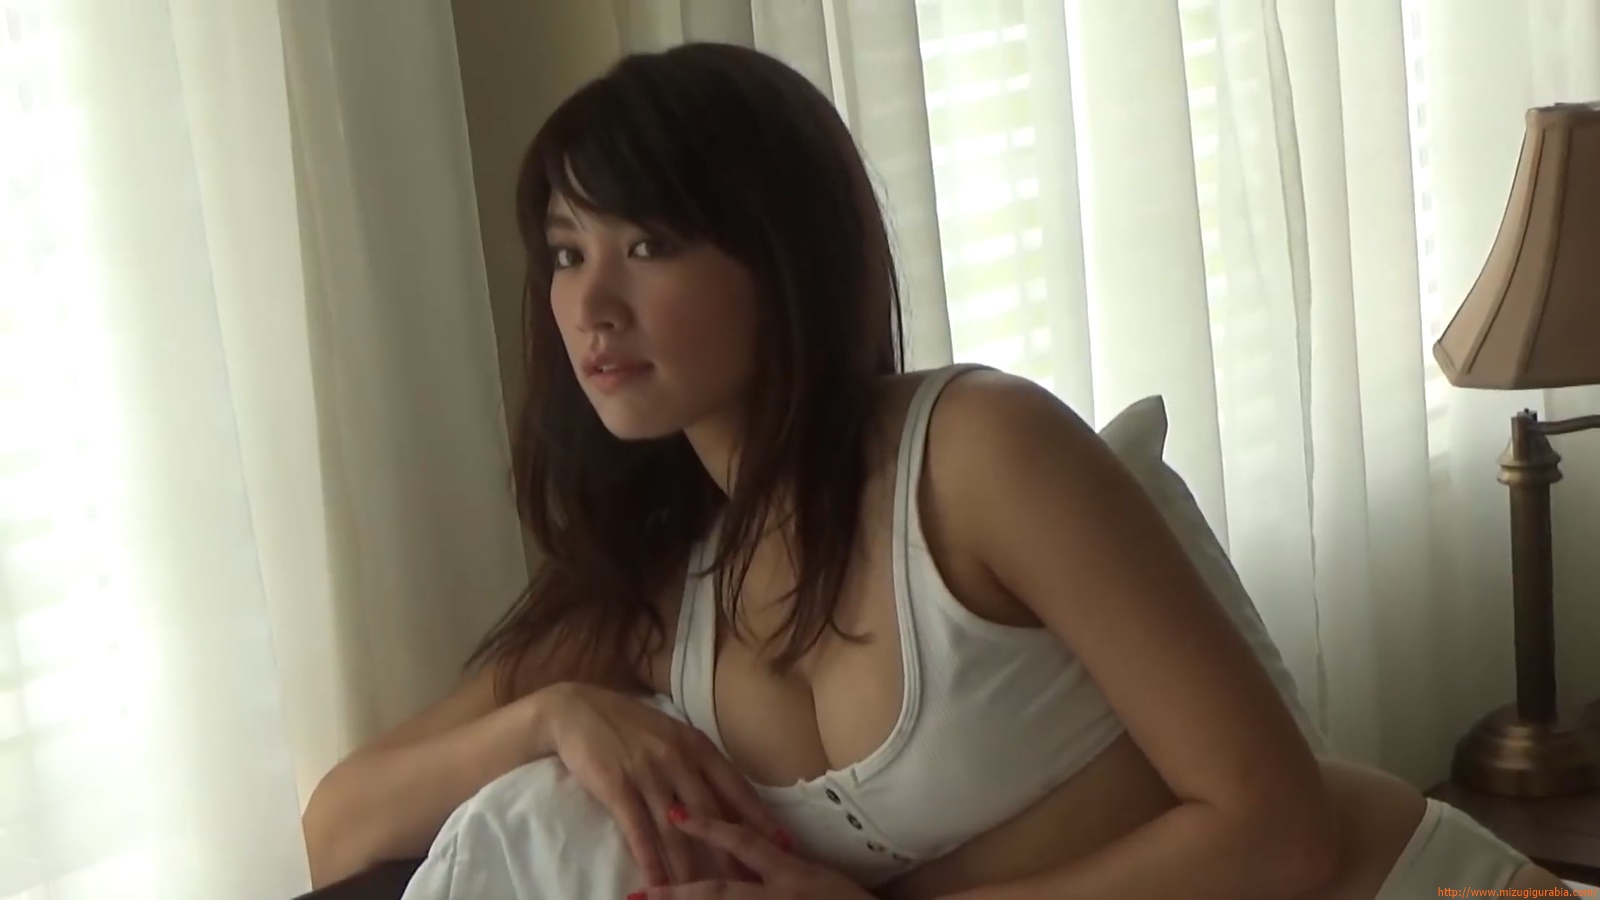 Shes a sunny bodice who continues to lead the way in gravure004